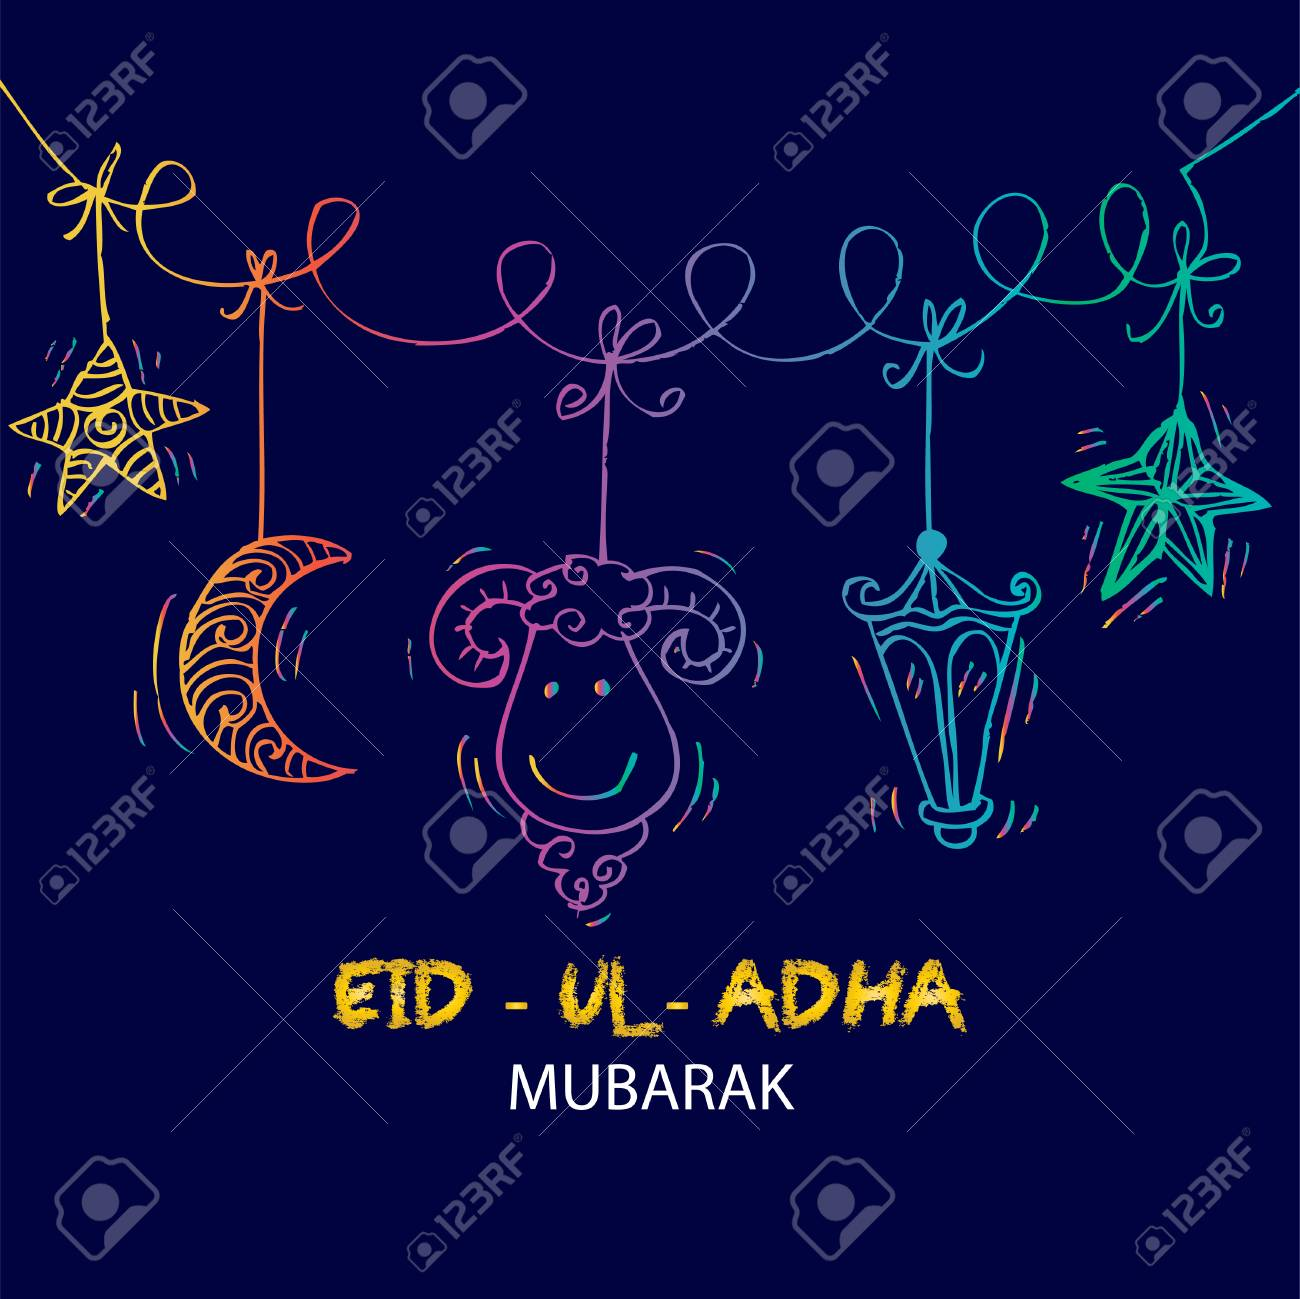 Greeting card design for muslim community festival eid ul adha greeting card design for muslim community festival eid ul adha stock vector 84919414 m4hsunfo